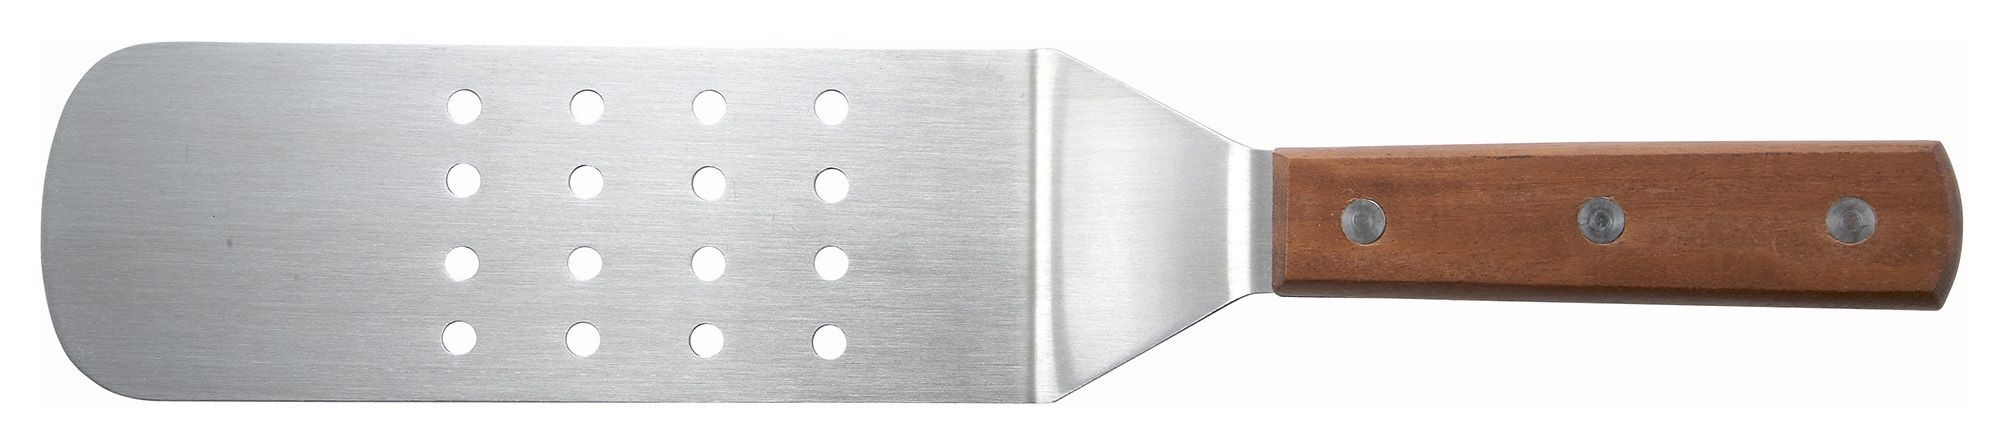 "Winco TN409 Flexible Turner with 9-1/2"" x 3"" Perforated Blade"